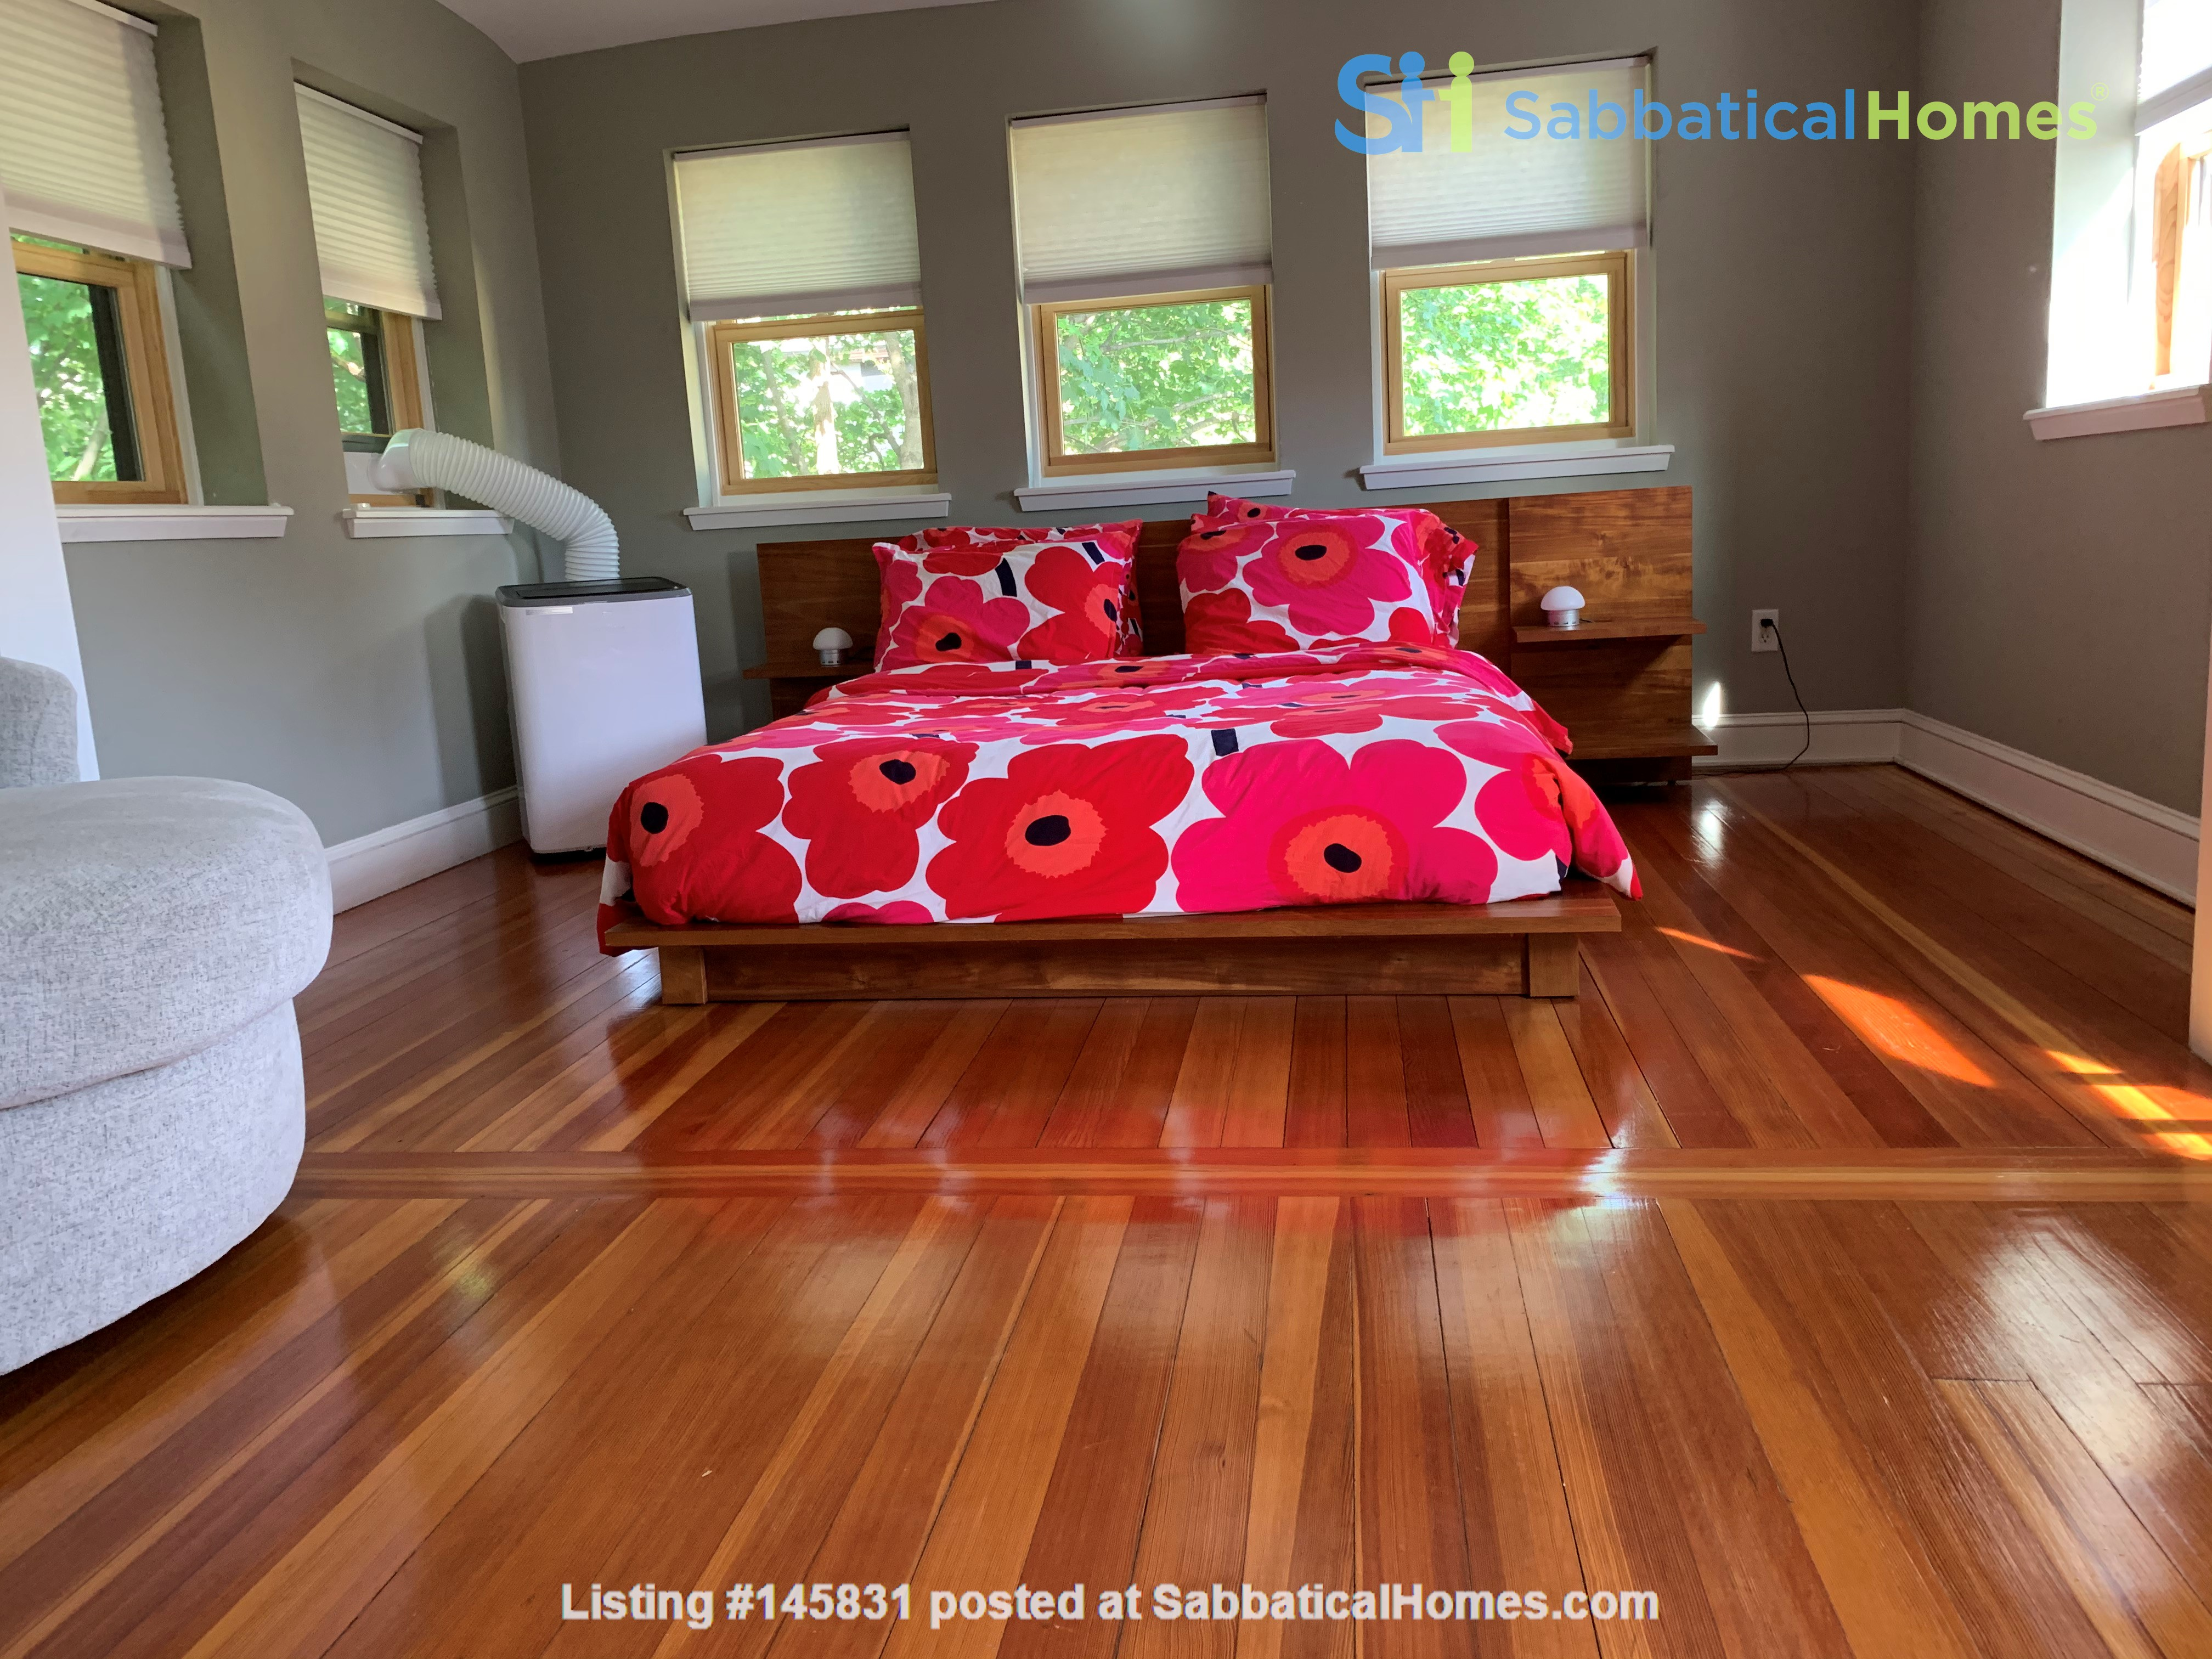 Harvard MIT HKS HBS! Fully furnished all utilities! Pets OK! No fee! Home Rental in Cambridge 3